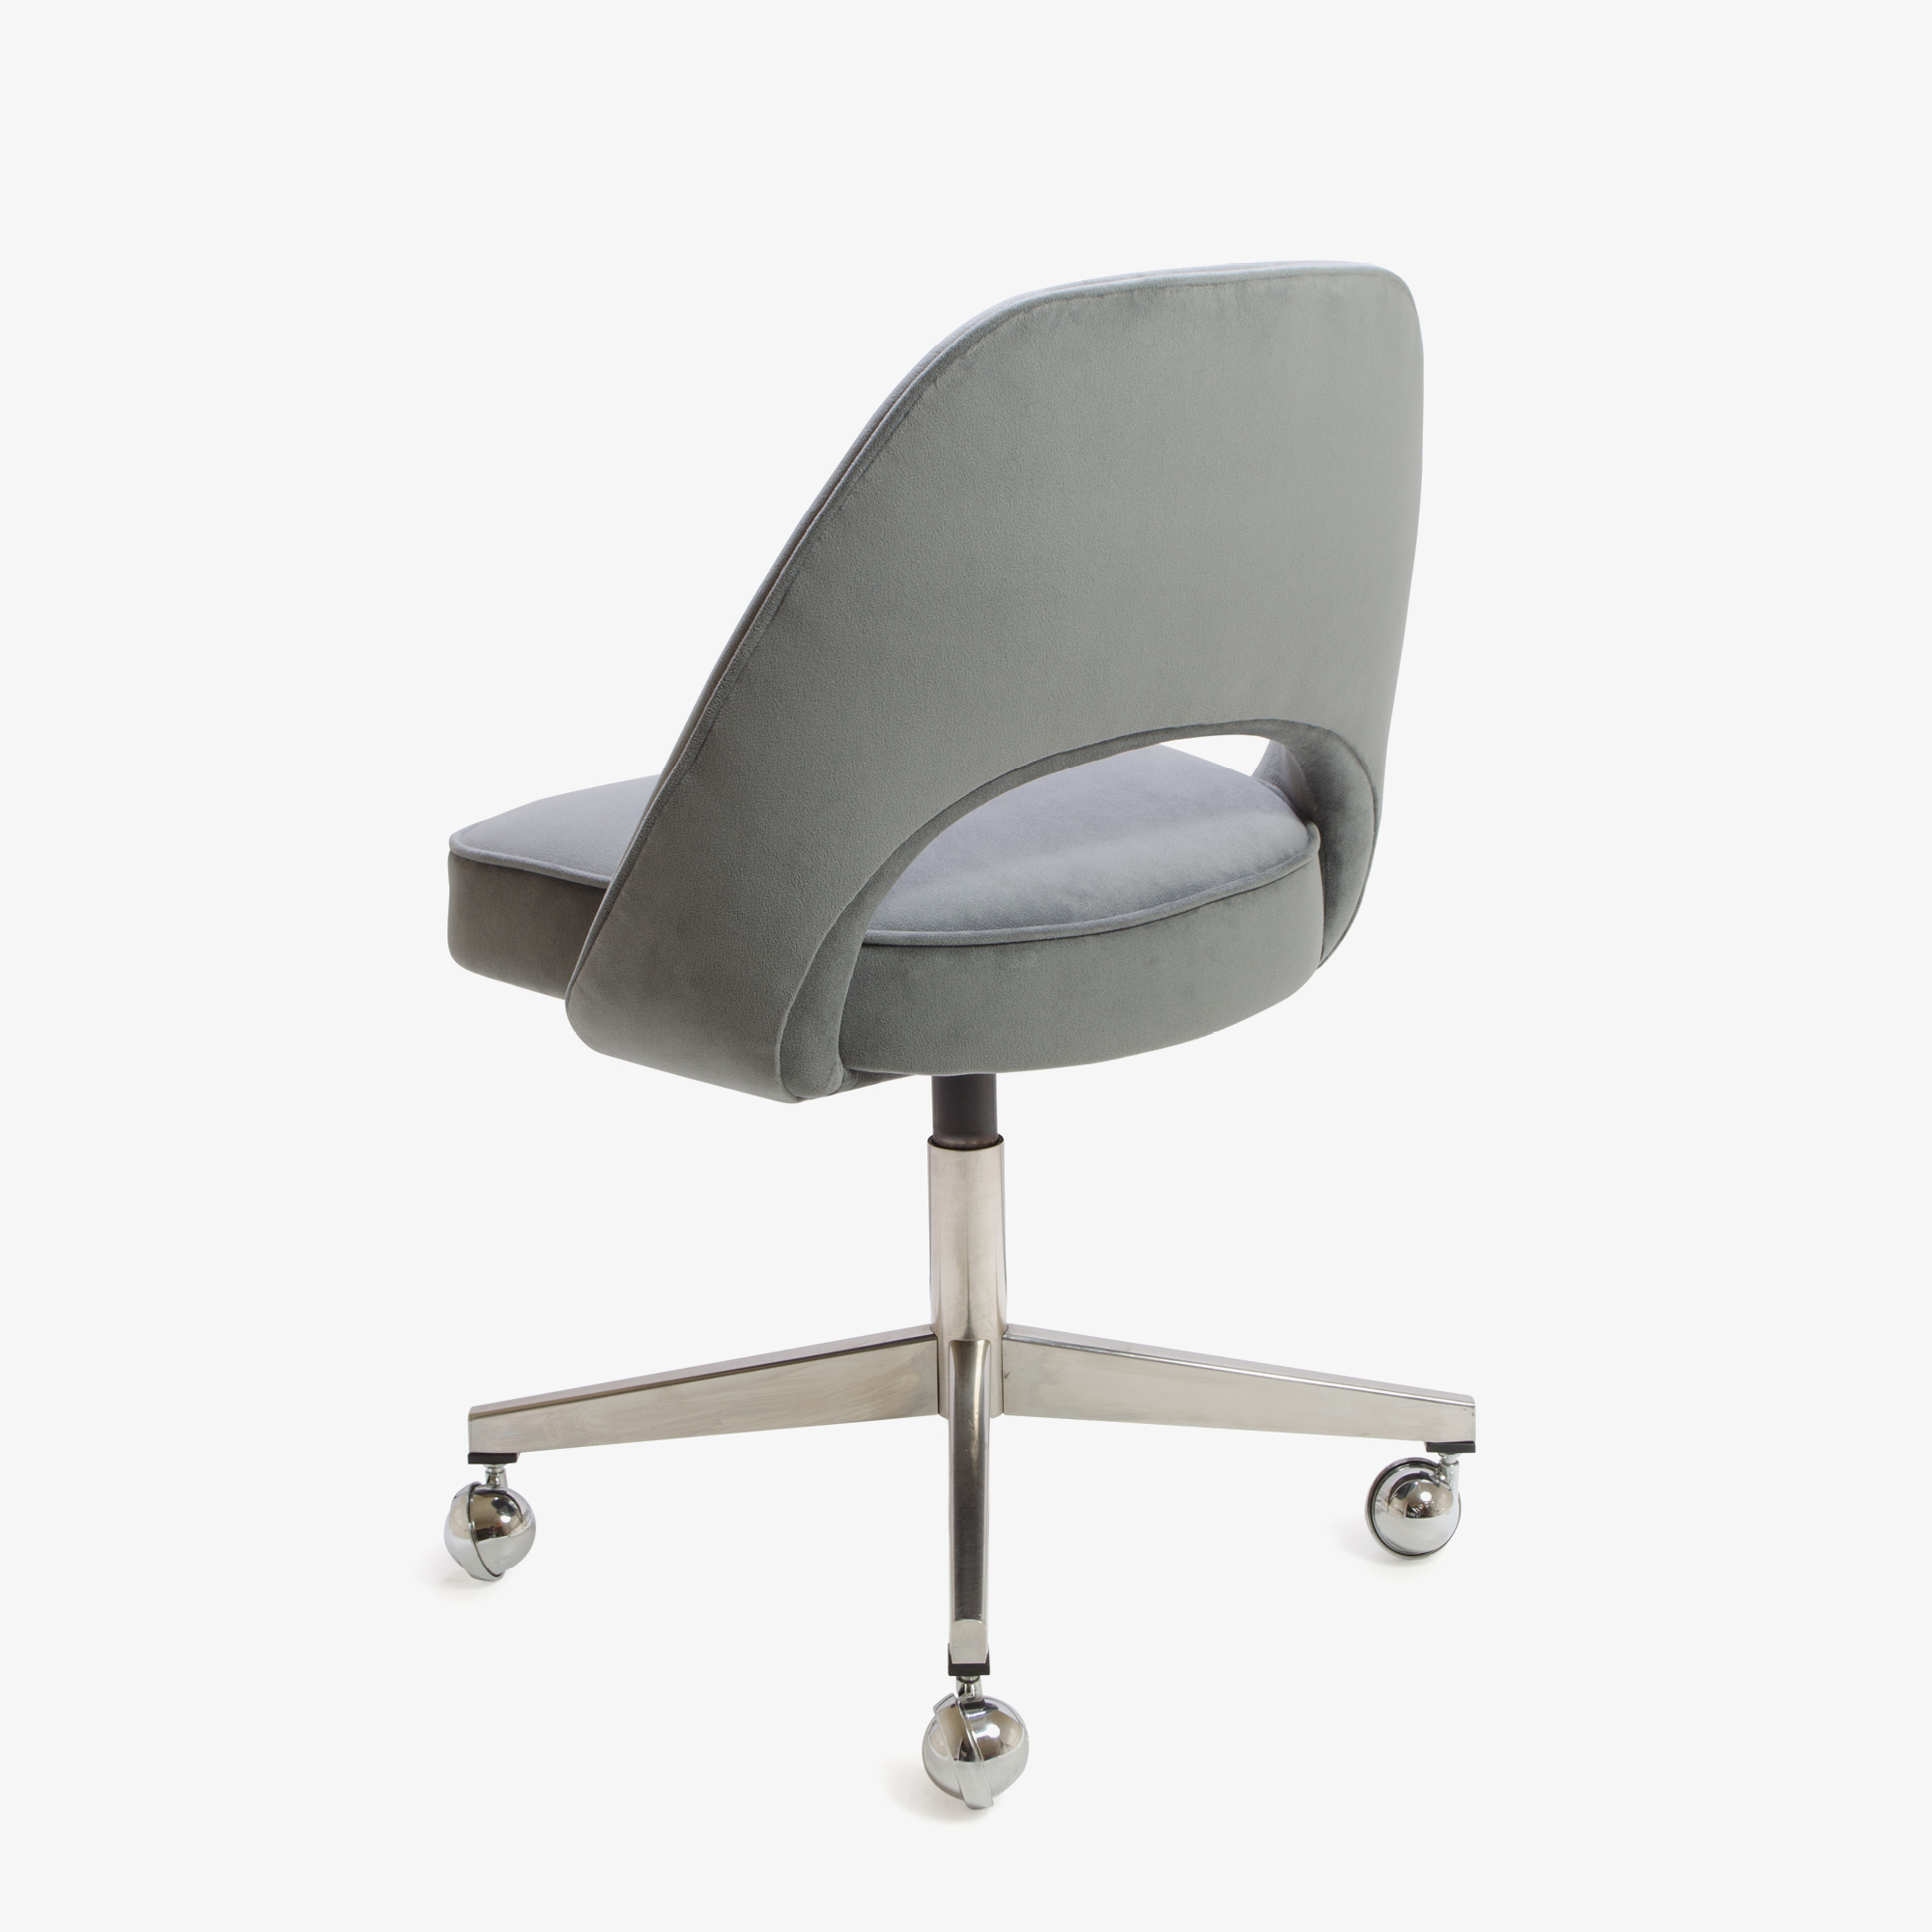 Knoll Saarinen Executive Armless Chair in Moleskin